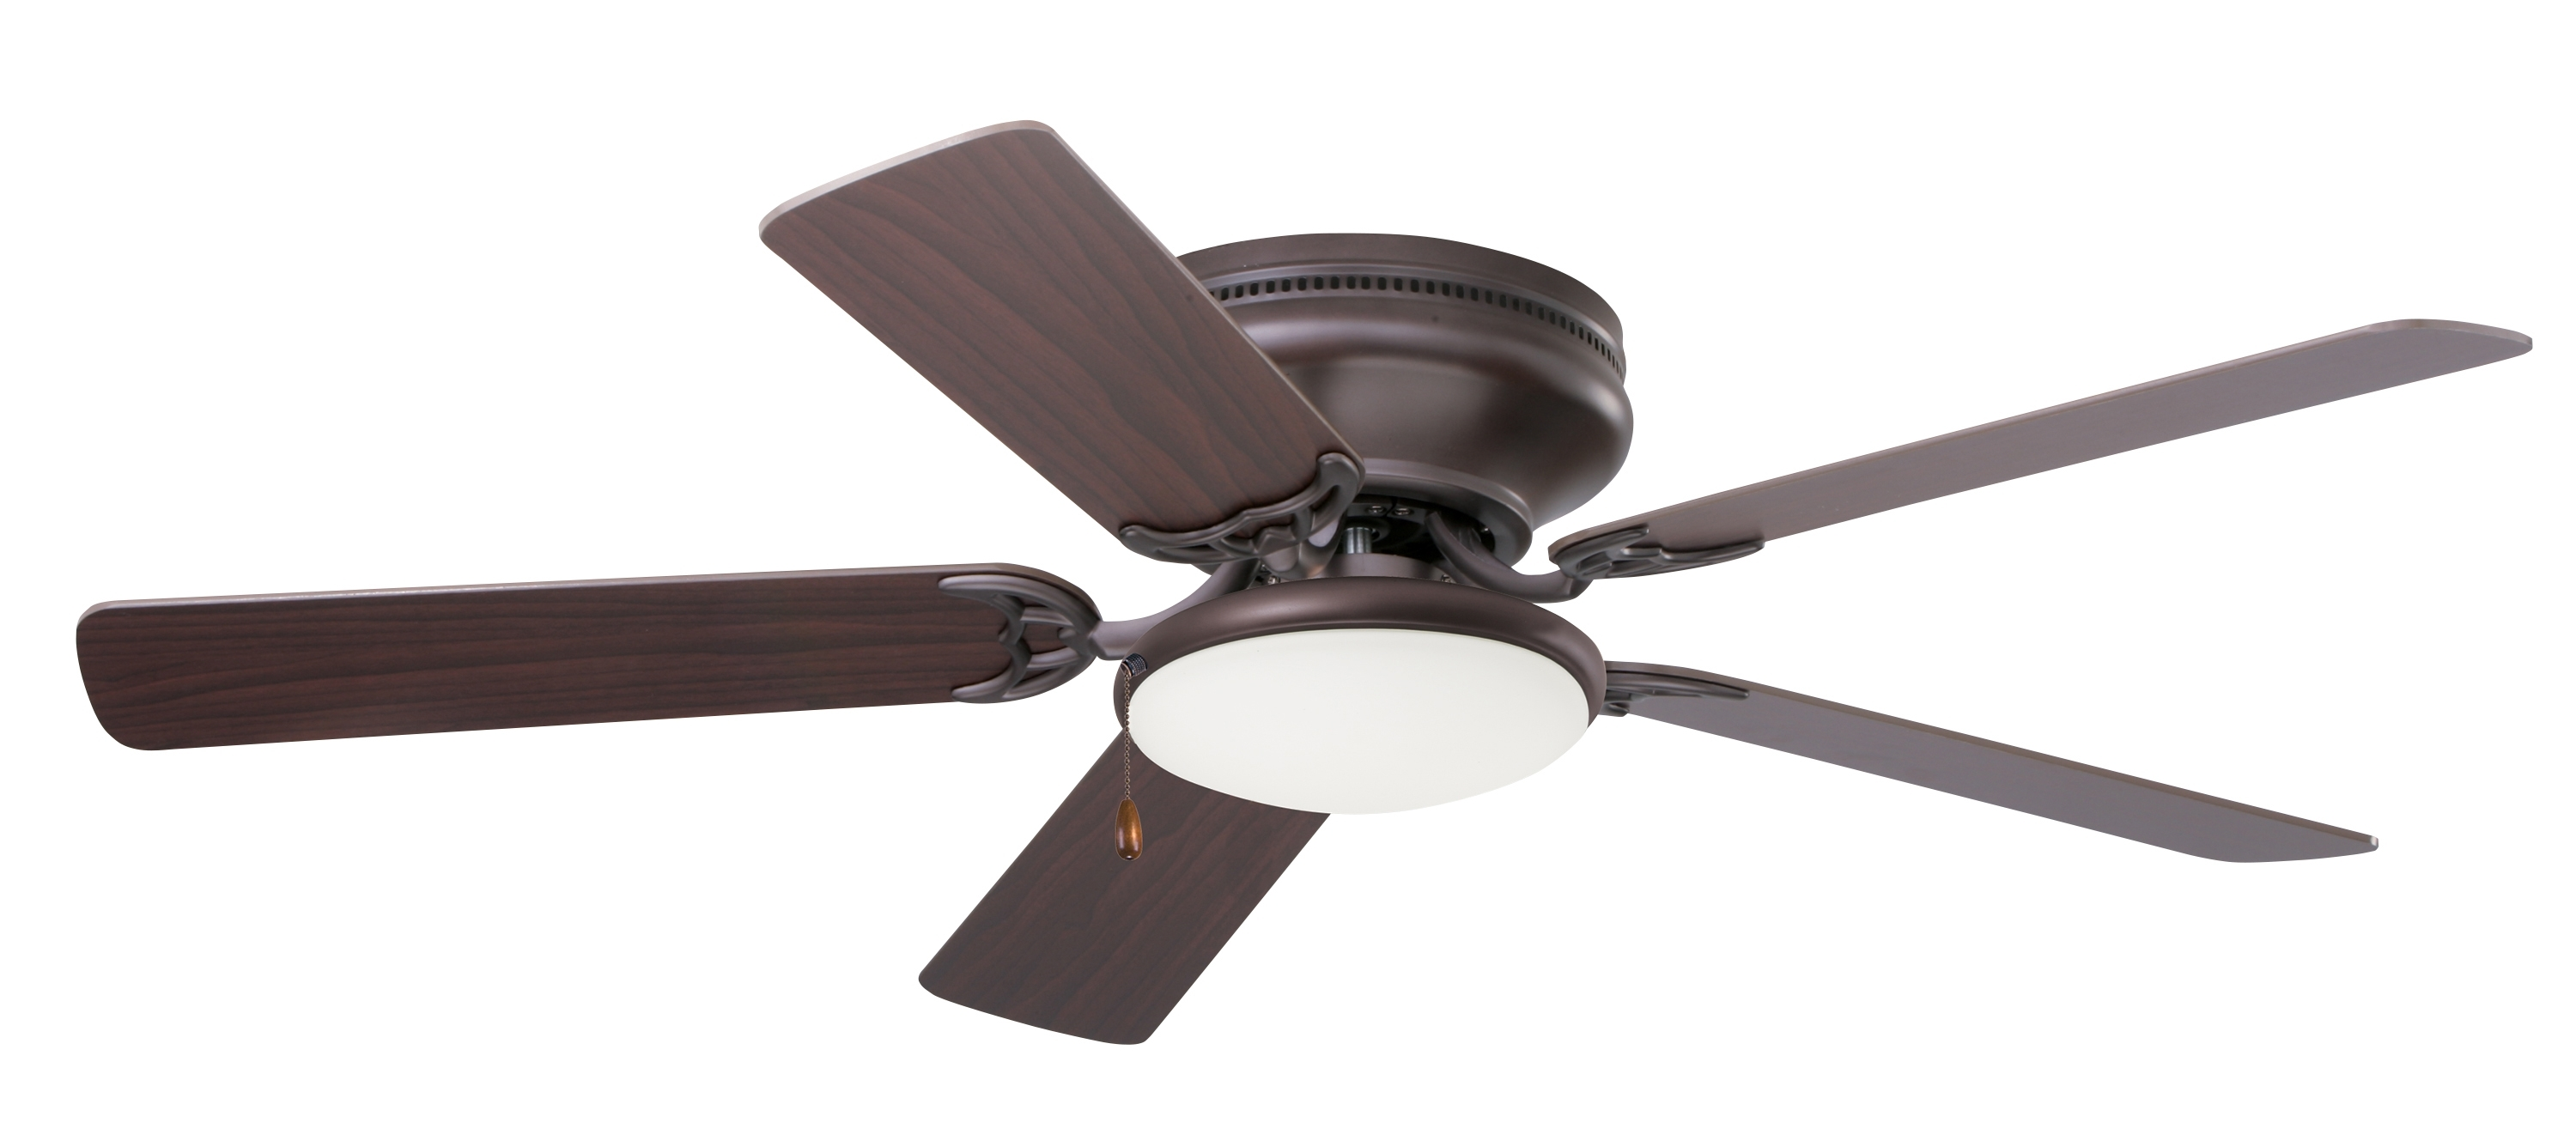 2018 Emerson Outdoor Ceiling Fans With Lights Inside Emerson Fans – Dorian Drake International Inc (View 1 of 20)